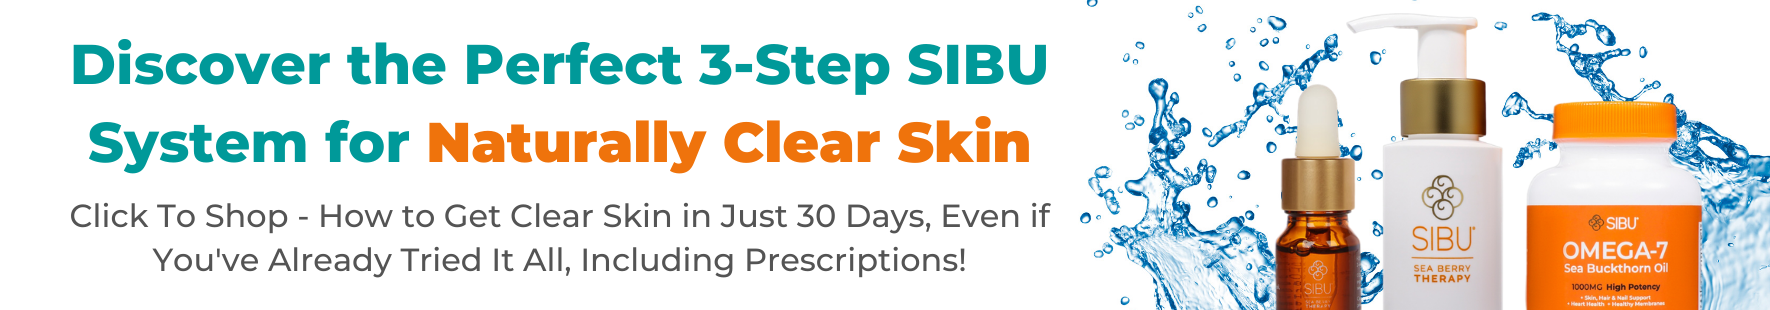 Discover the perfect 3-step Sibu system for naturally clear skin